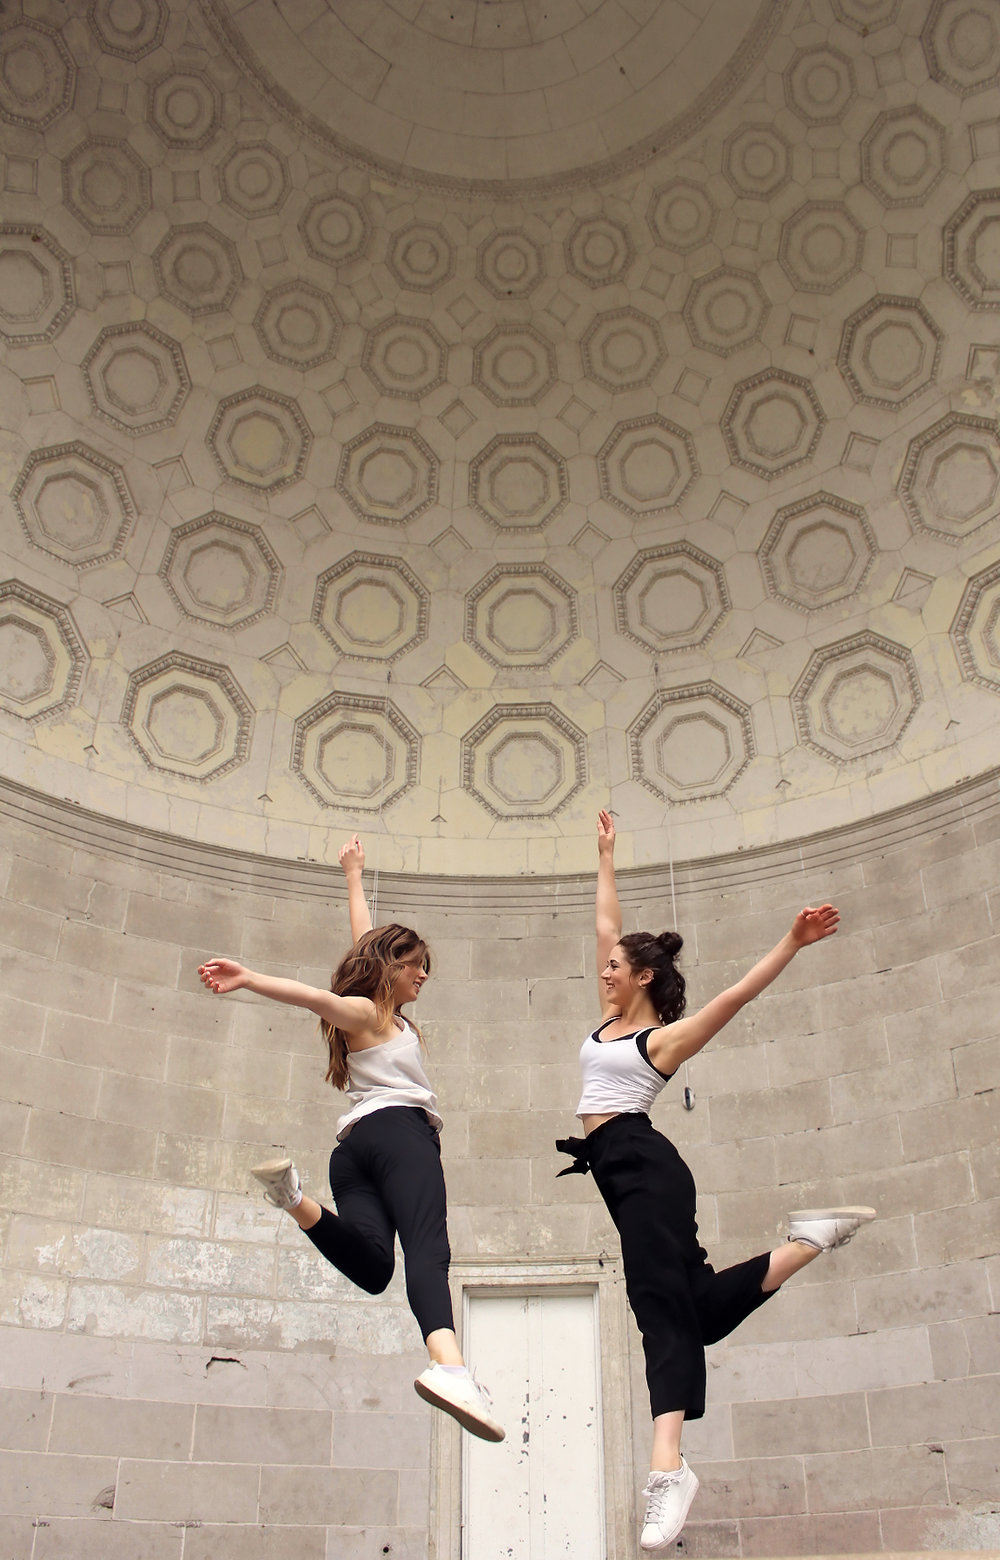 """Symmetryto empathy - With a partnerStand side by side and produce symmetrical movement as if you were mirror images of each other. Keep changing the roles of the leader and the follower. Can you change roles organically without talking?EmpathyThe person leading closes their eyes. Move slowly throughout the exercise. While taking turns in miming each other's movement, try to sense the feeling of your partner while dancing. Write down the feeling you were experiencing when you were the leader"""". Your partner will write down the feeling they sensed off of your movement. Switch roles and repeat the task. After a couple of rounds change your papers to see if you matched.When we mimic each other's movement, we develop kinetic empathy."""